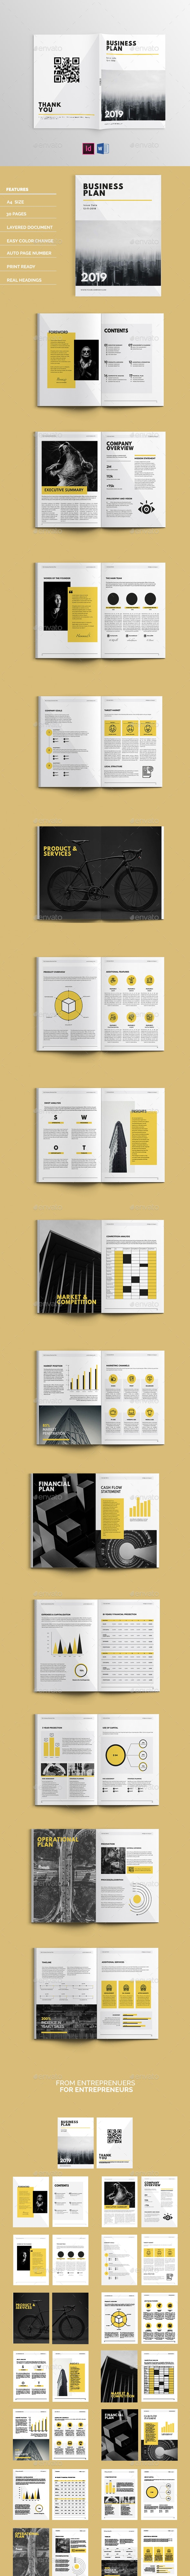 Corporate Business Plan - Proposals & Invoices Stationery